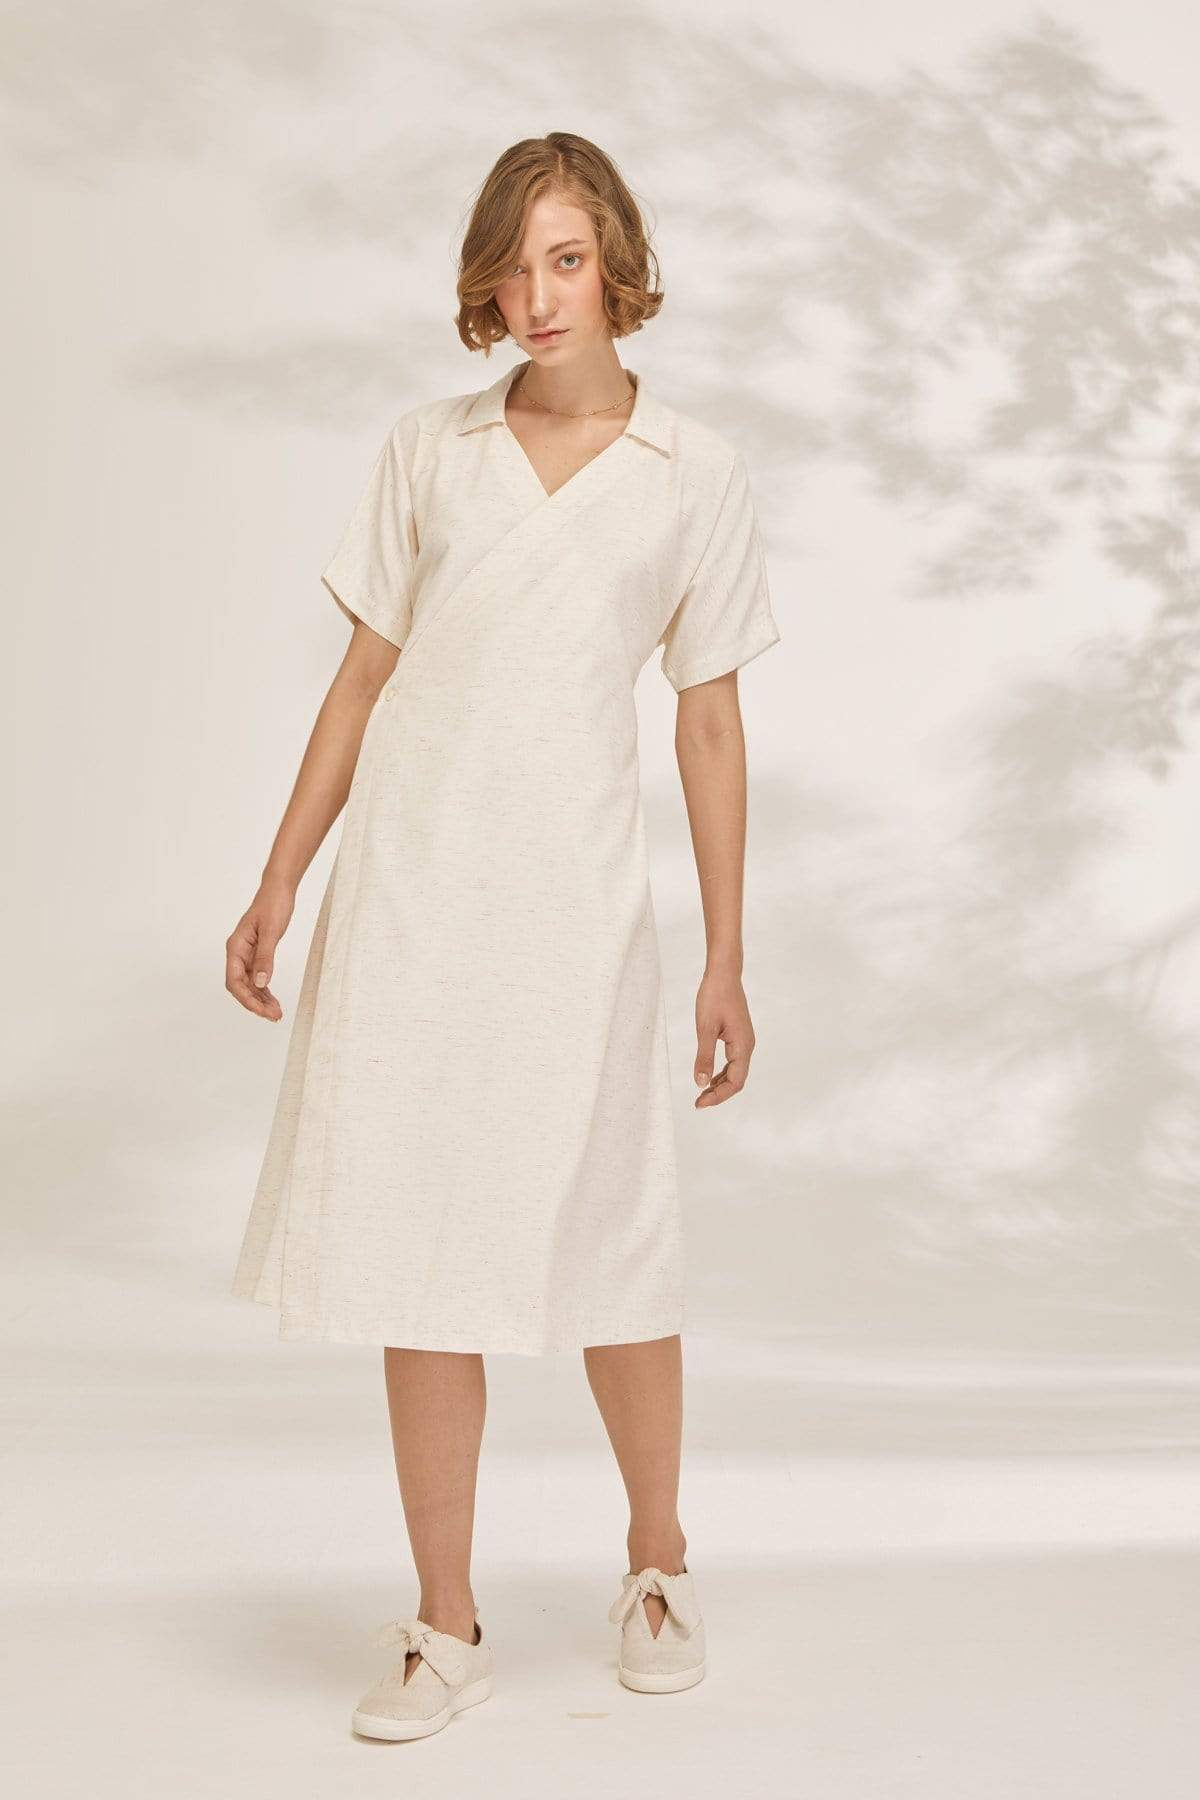 TAKTAI Dress S / Natural Balloon Sleeve Wrap Dress